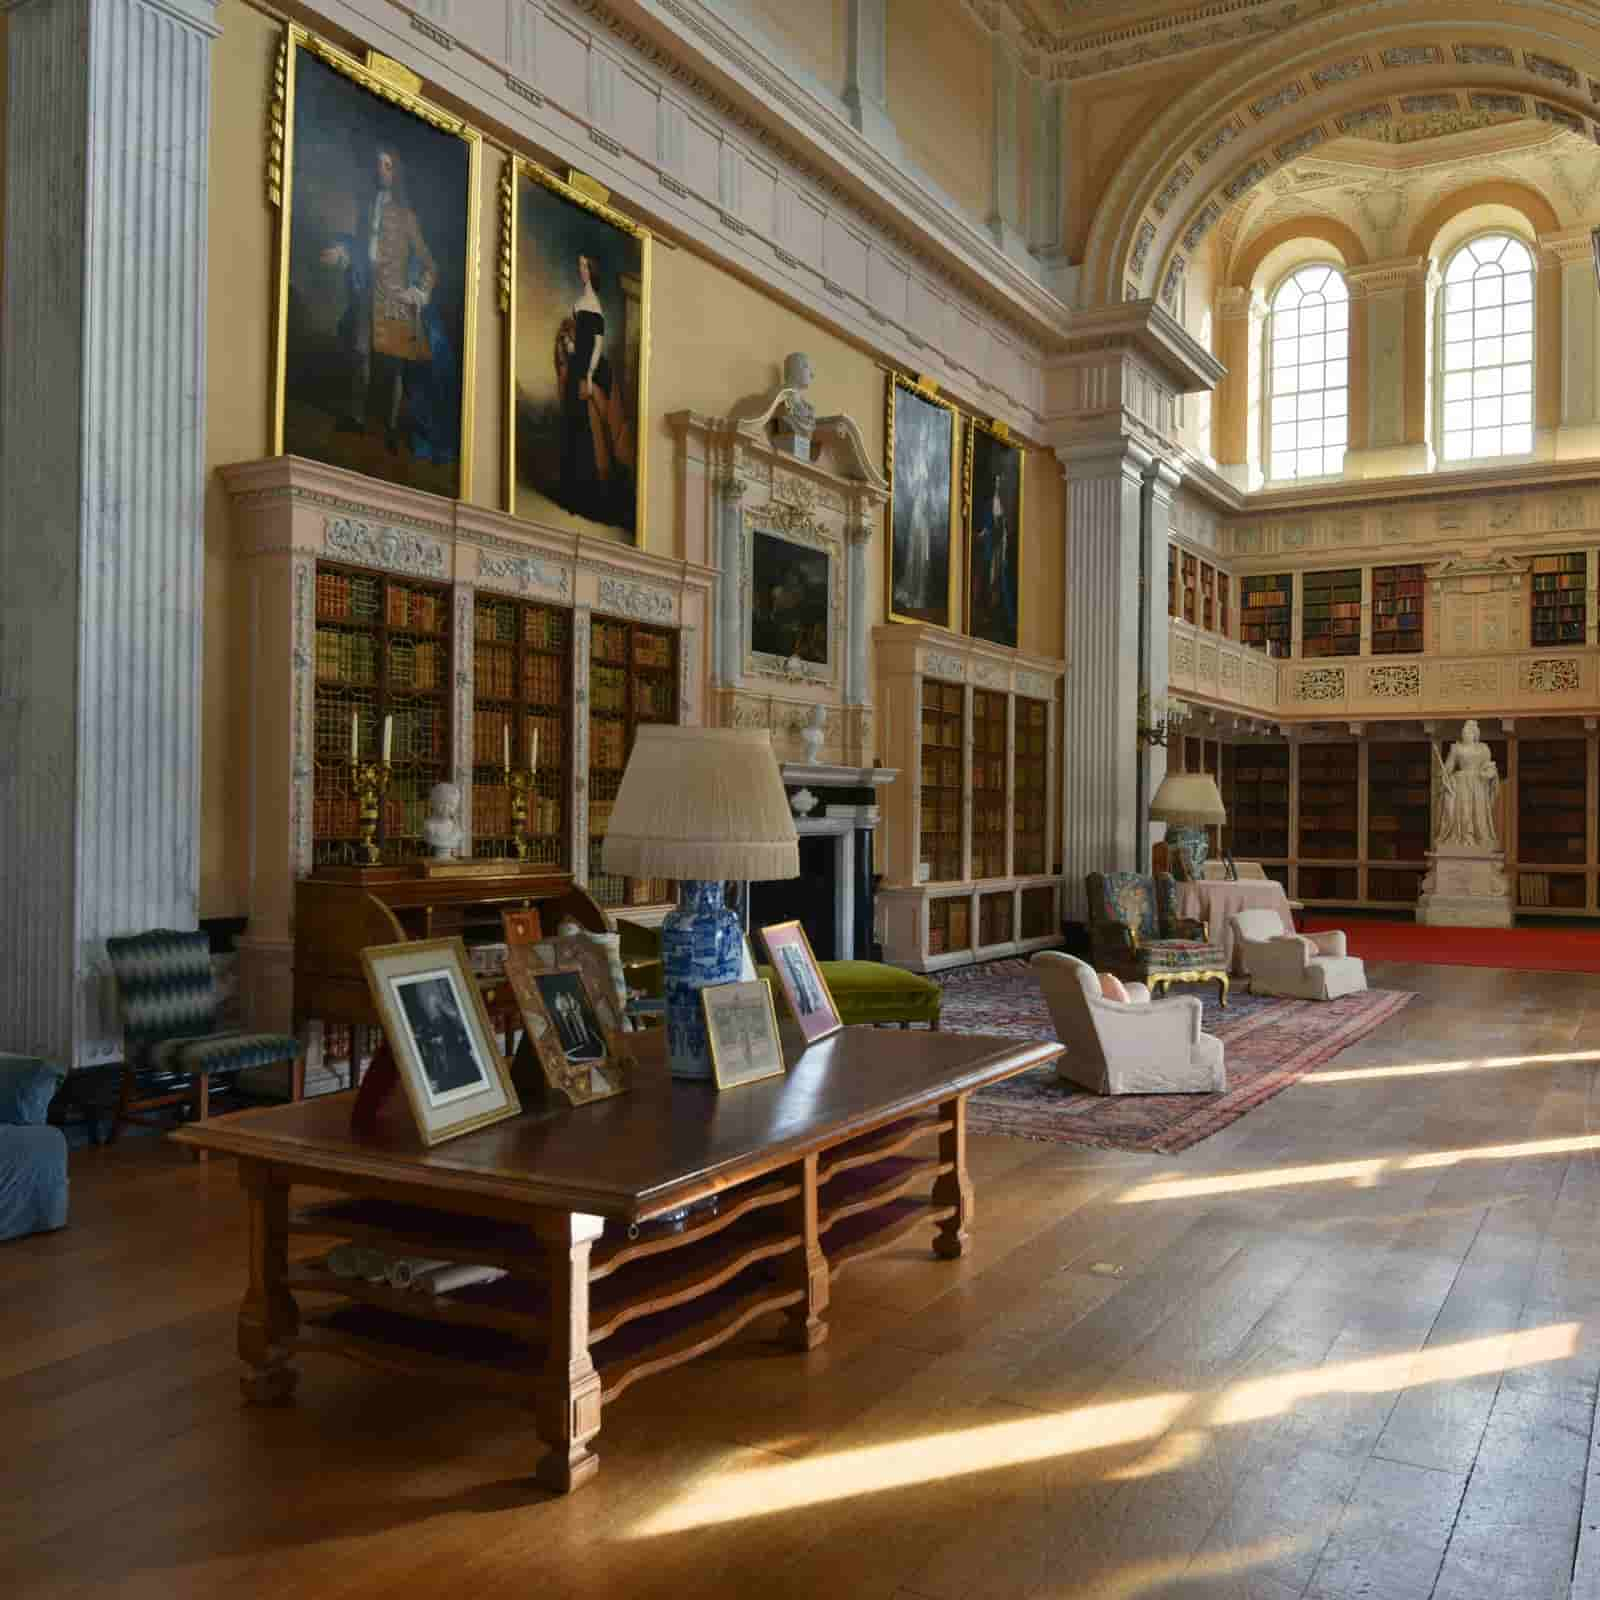 Blenheim Palace State Rooms, furnished in an 18th-century style.